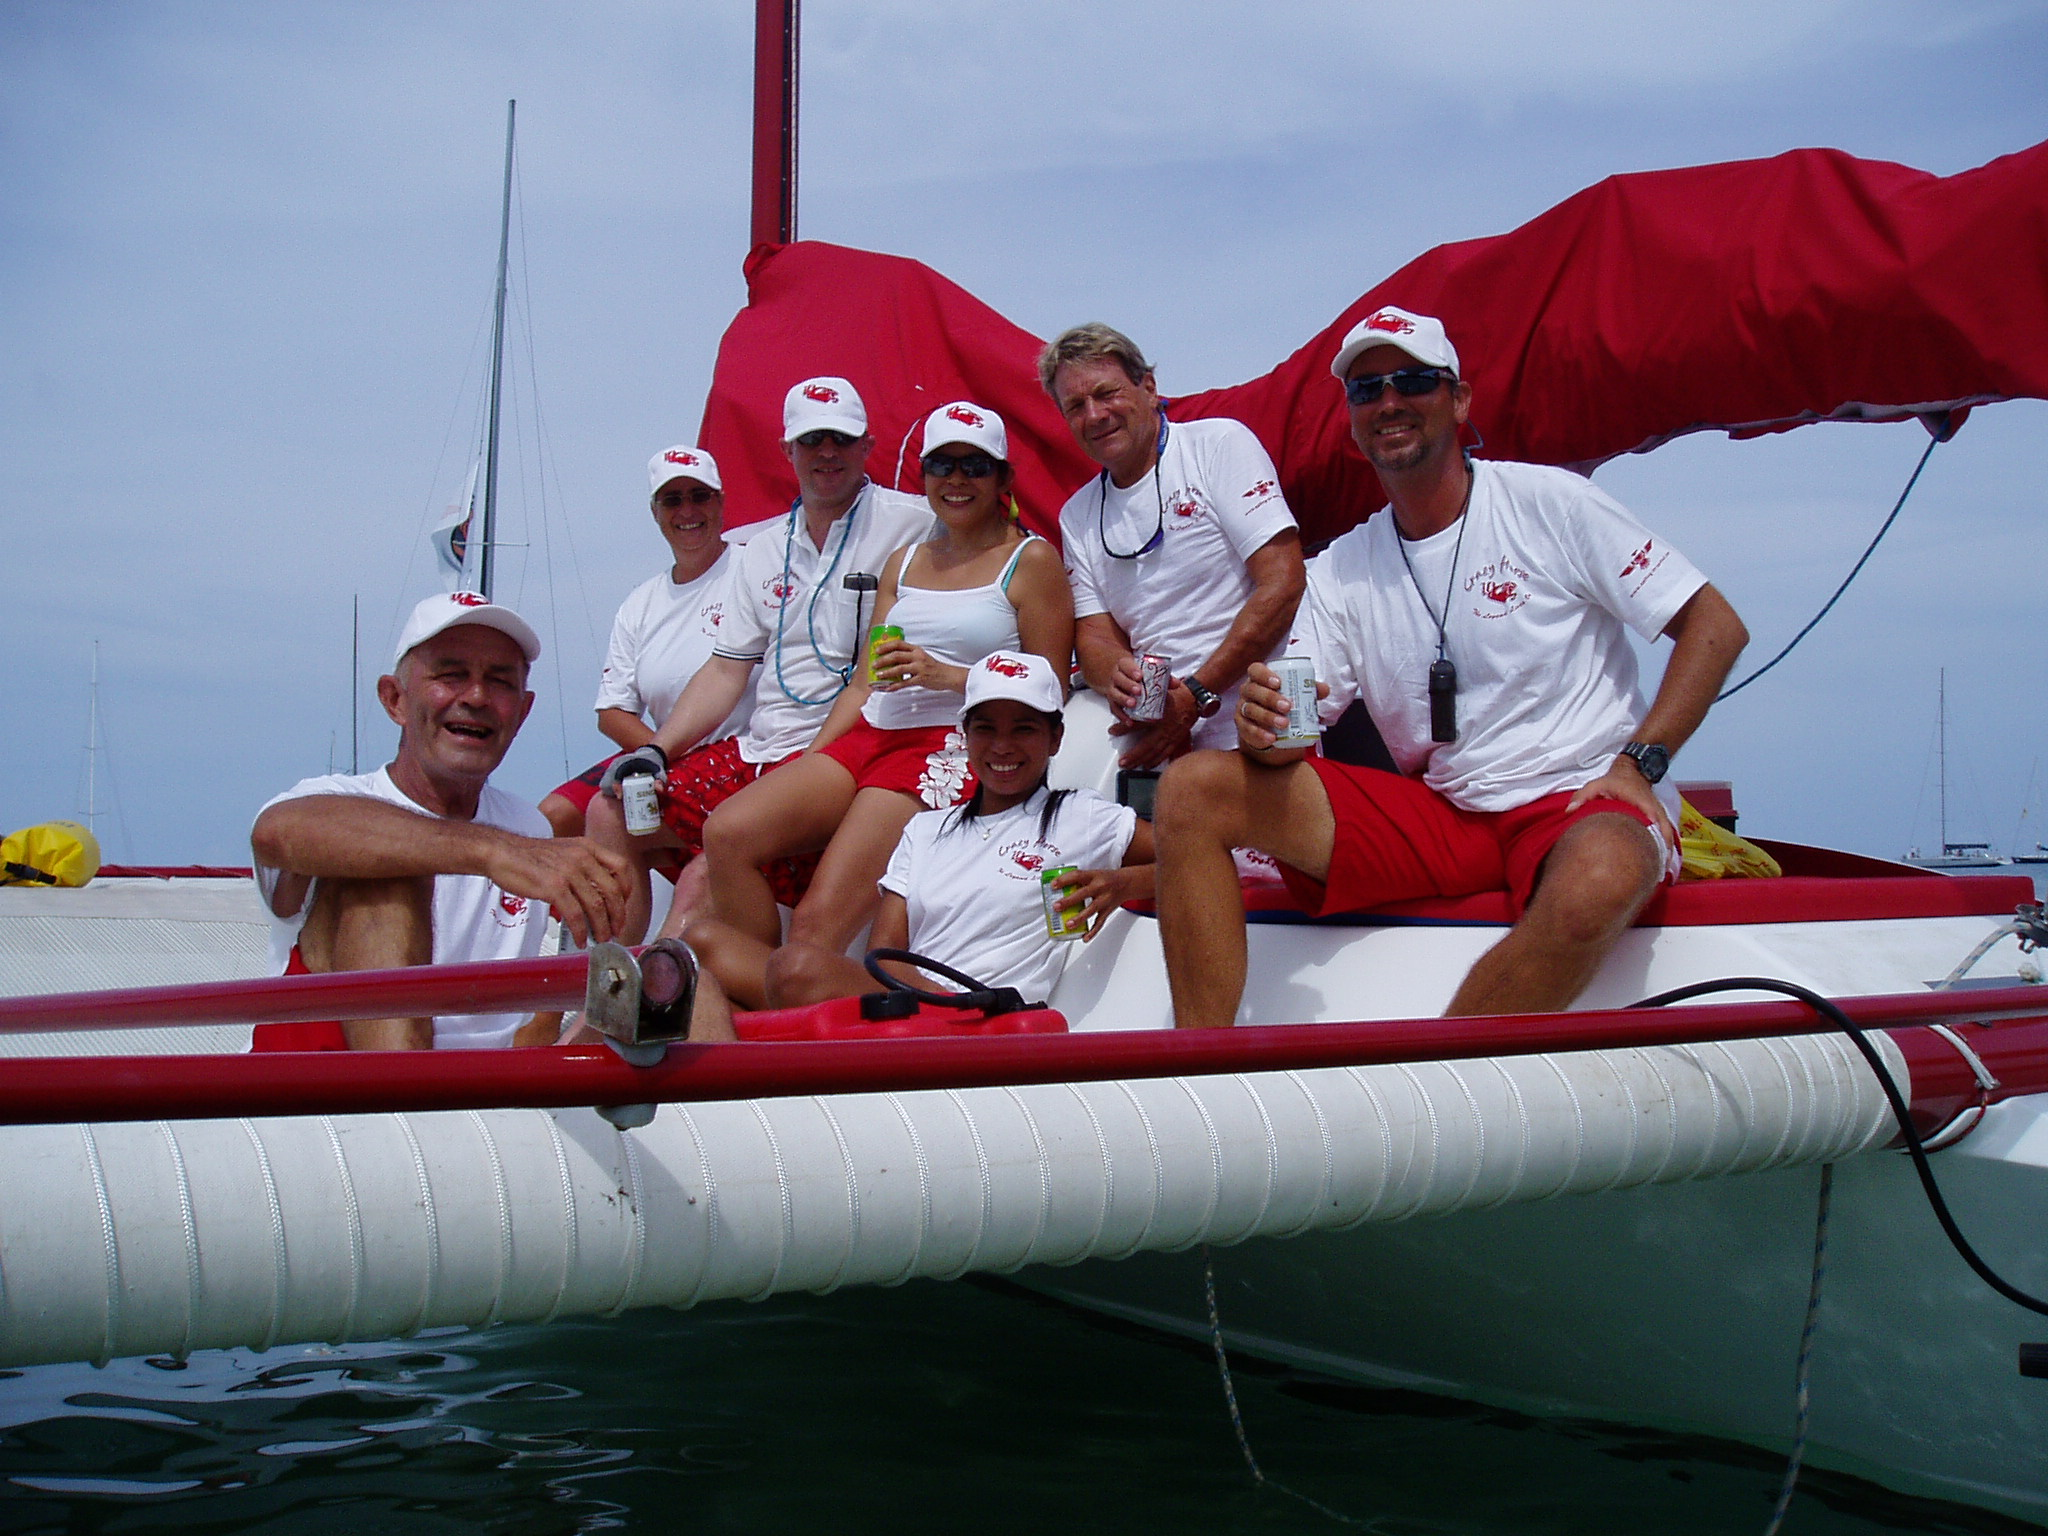 gallery/CH-gets-a-new-coat-Regatta-2008-009.jpg